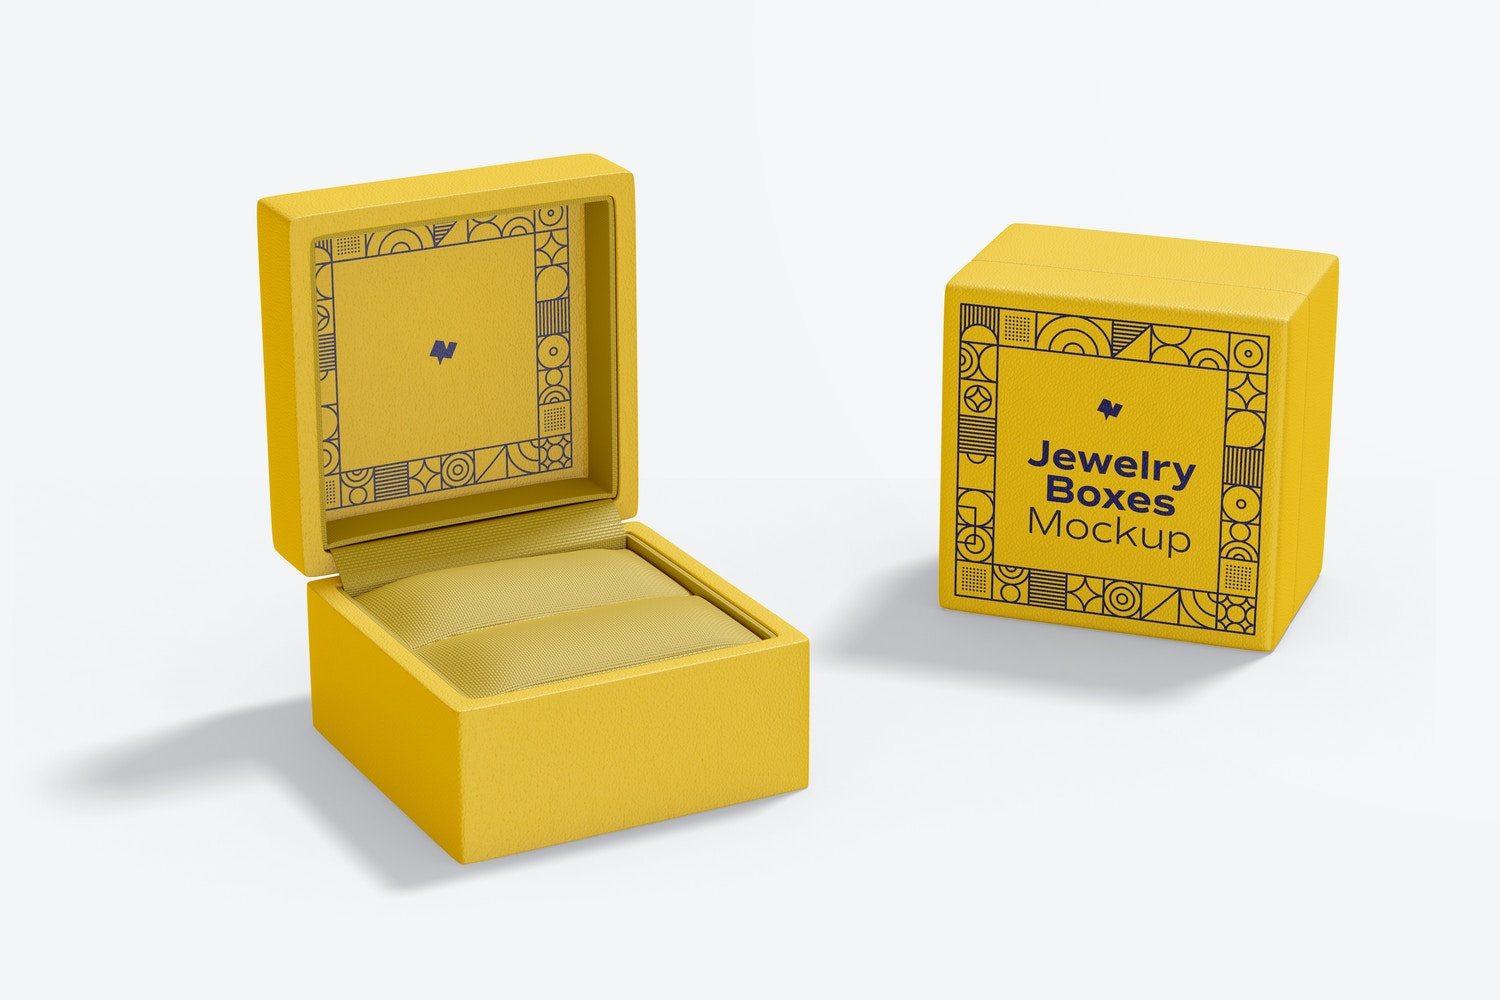 Jewelry Boxes Mockup, Front View